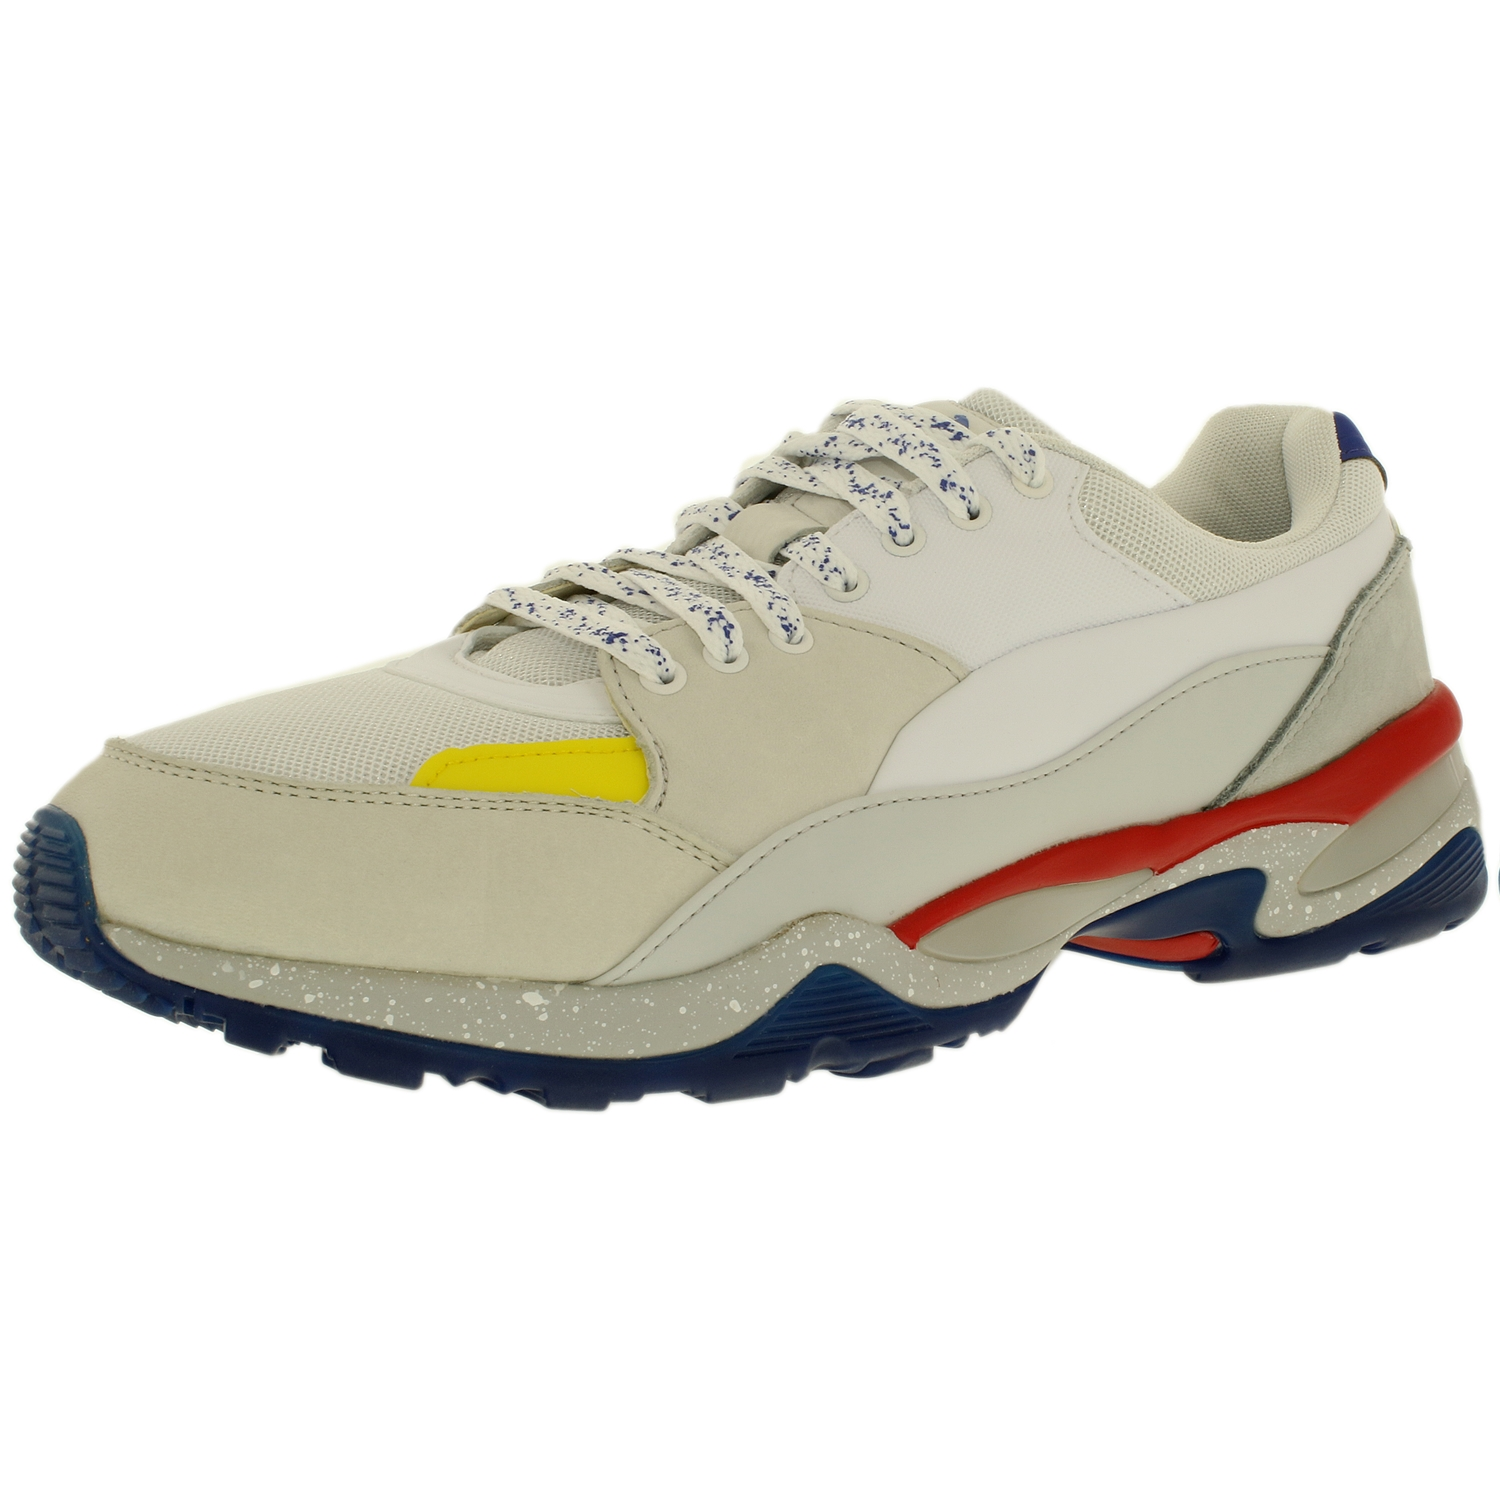 Puma Men's Mcq Tech Runner Lo White Glacier Gray Flame Scarlet Low Top Fabric Tennis Shoe 14M by Puma